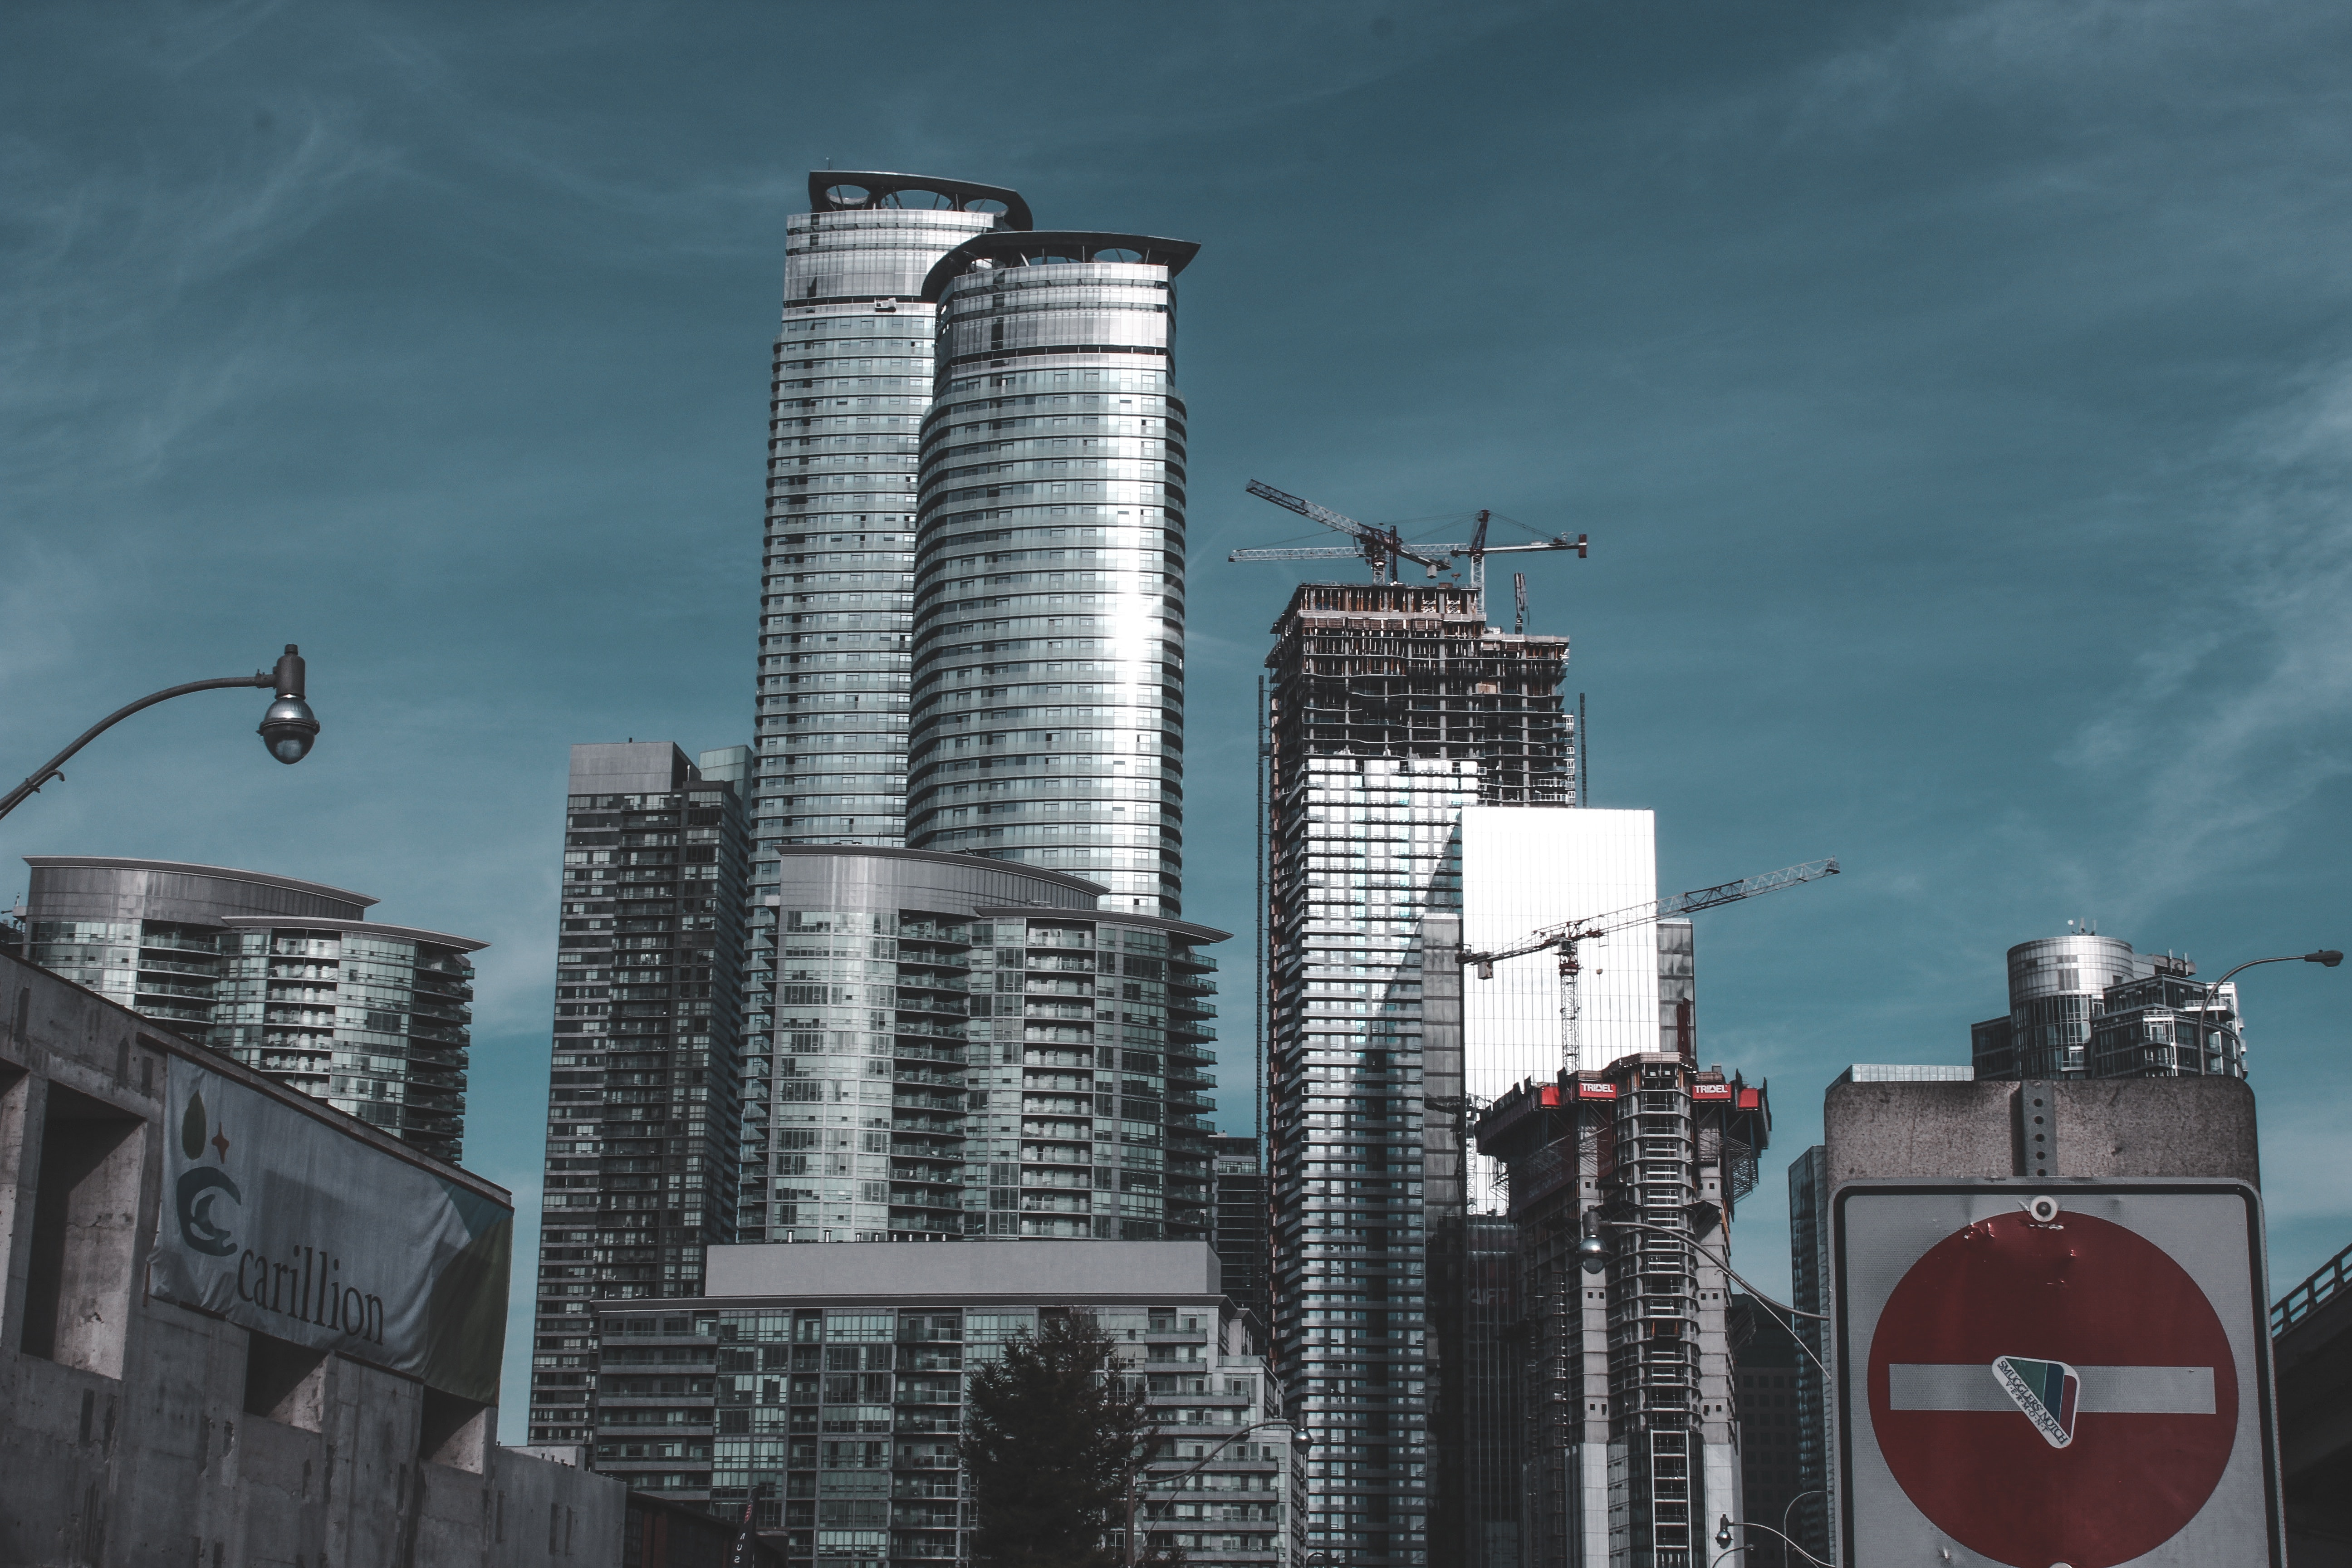 Skyscrapers at Daytime, Pollution, Urban, Tower, Tall, HQ Photo